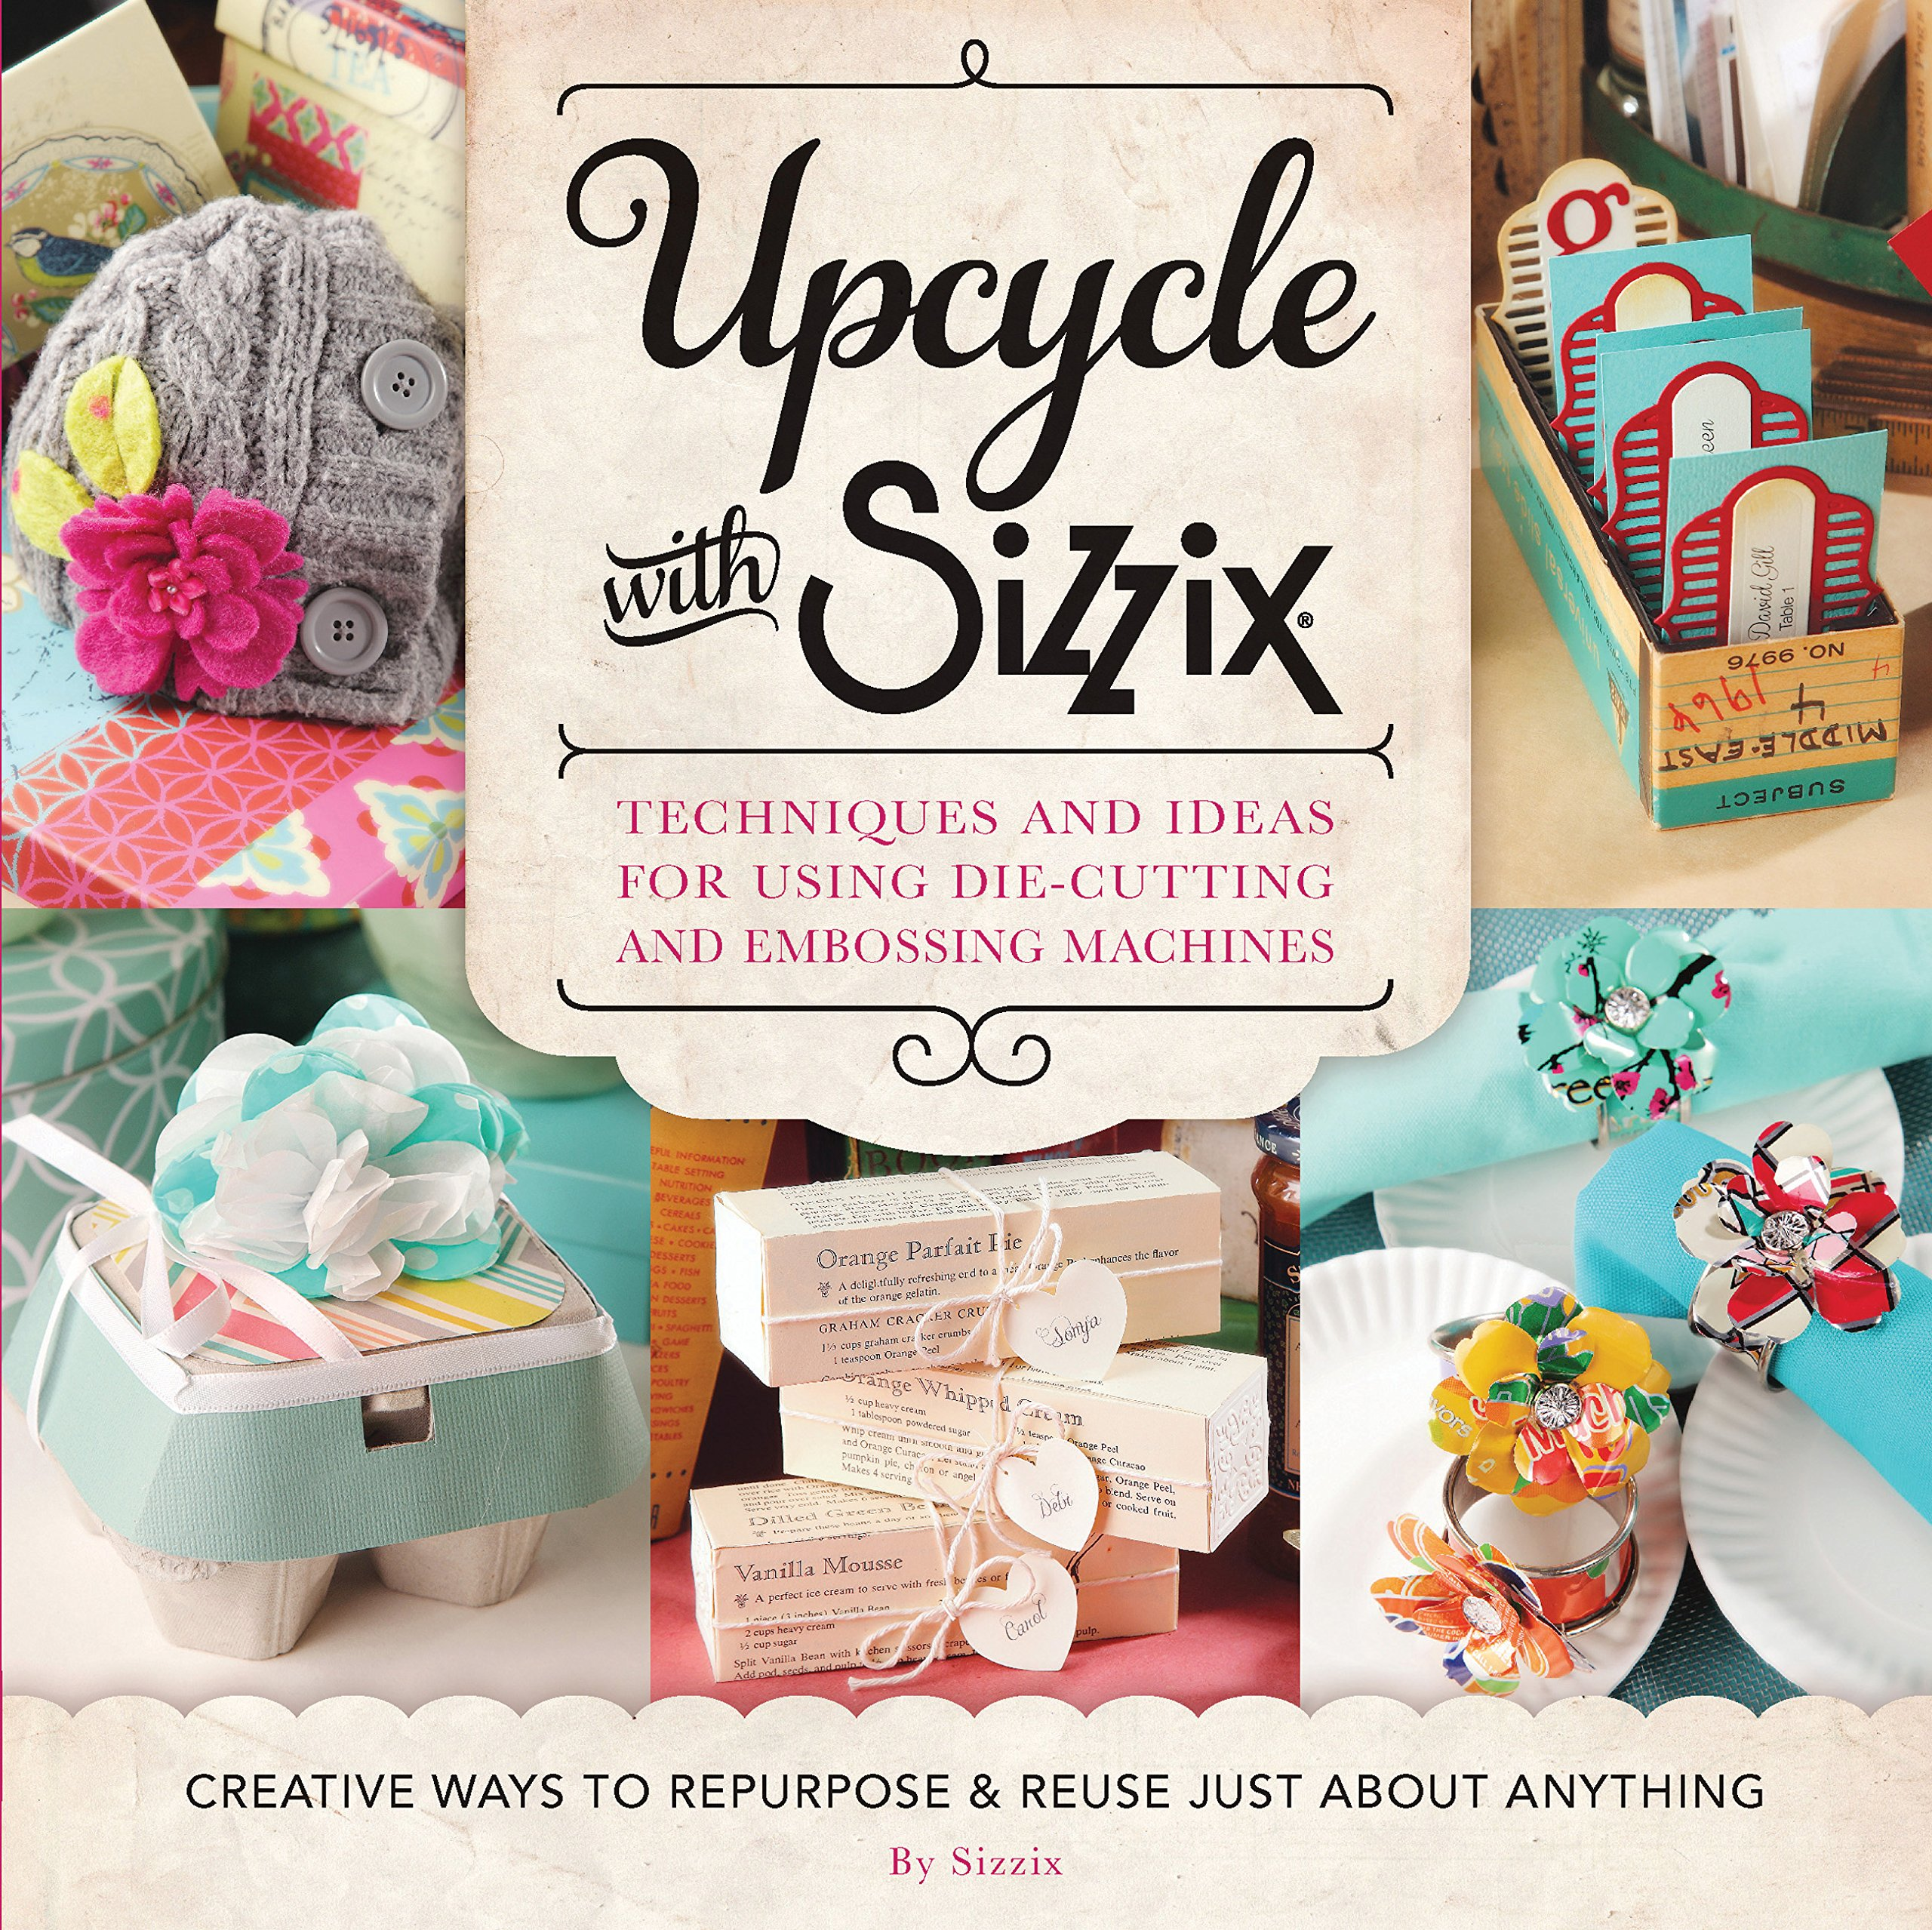 Upcycle With Sizzix Techniques And Ideas For Using Die Cutting Embossing Machines